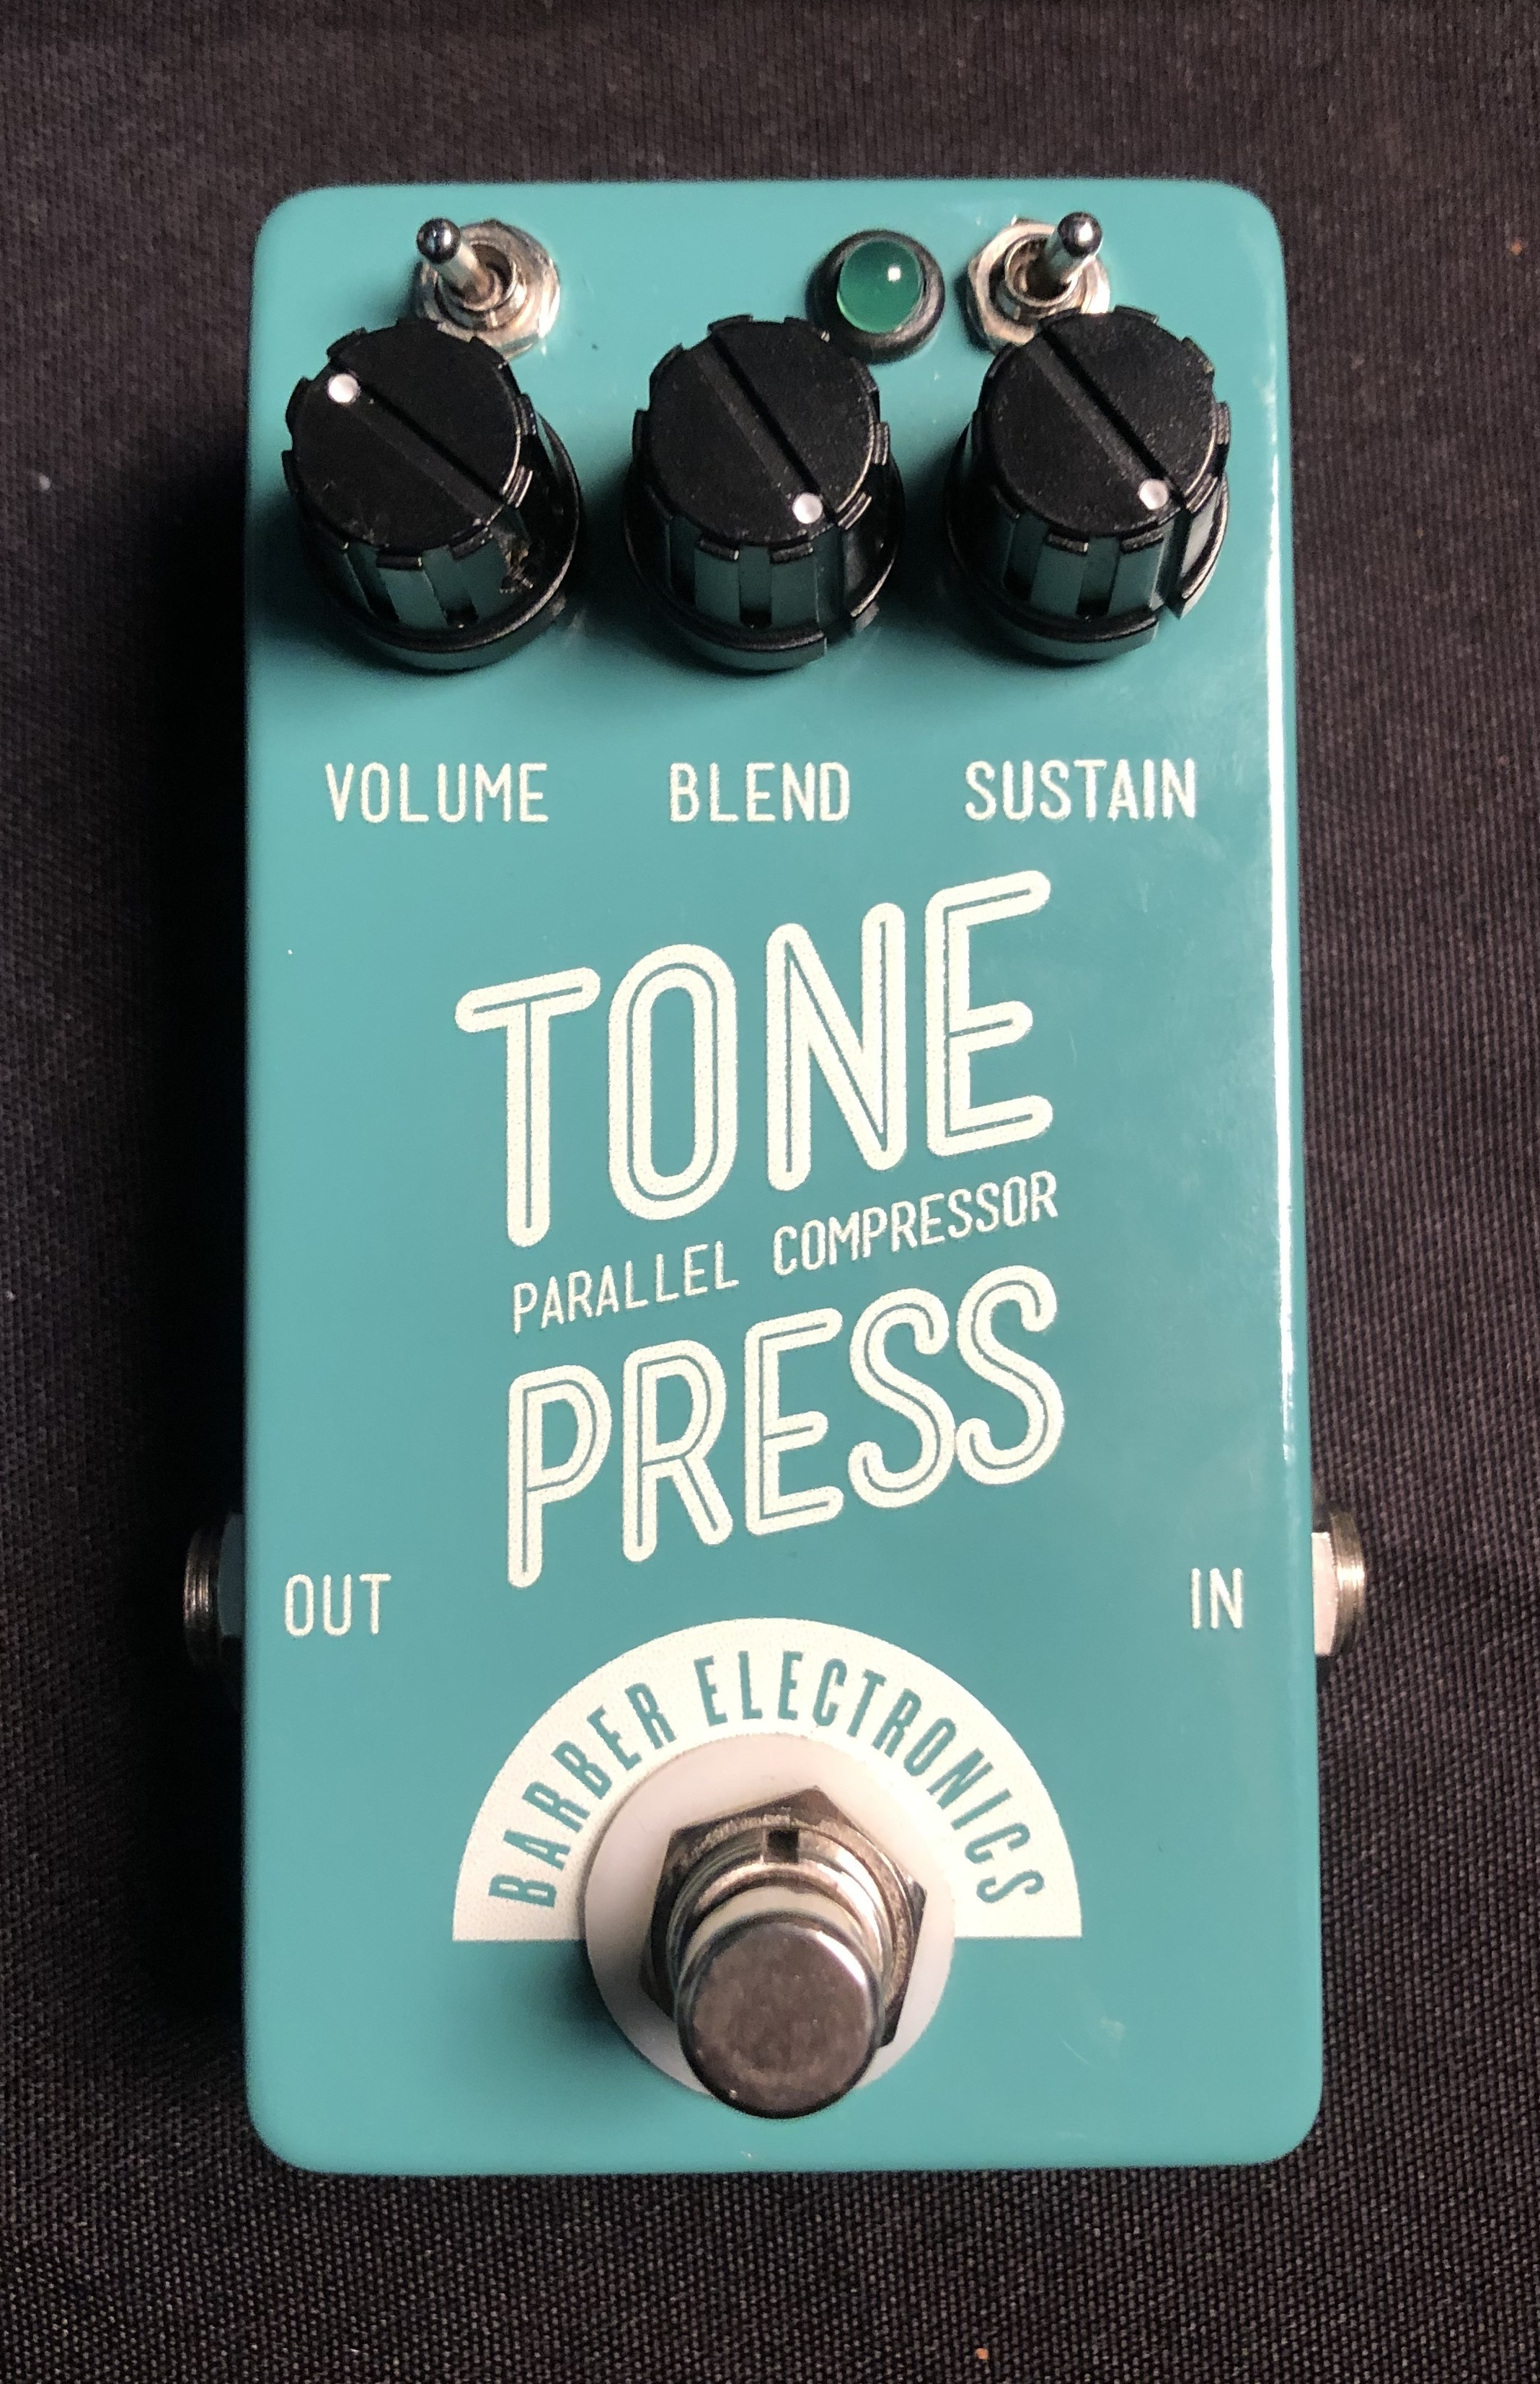 BARBER - Tone Press Parallel Compressor Pedal